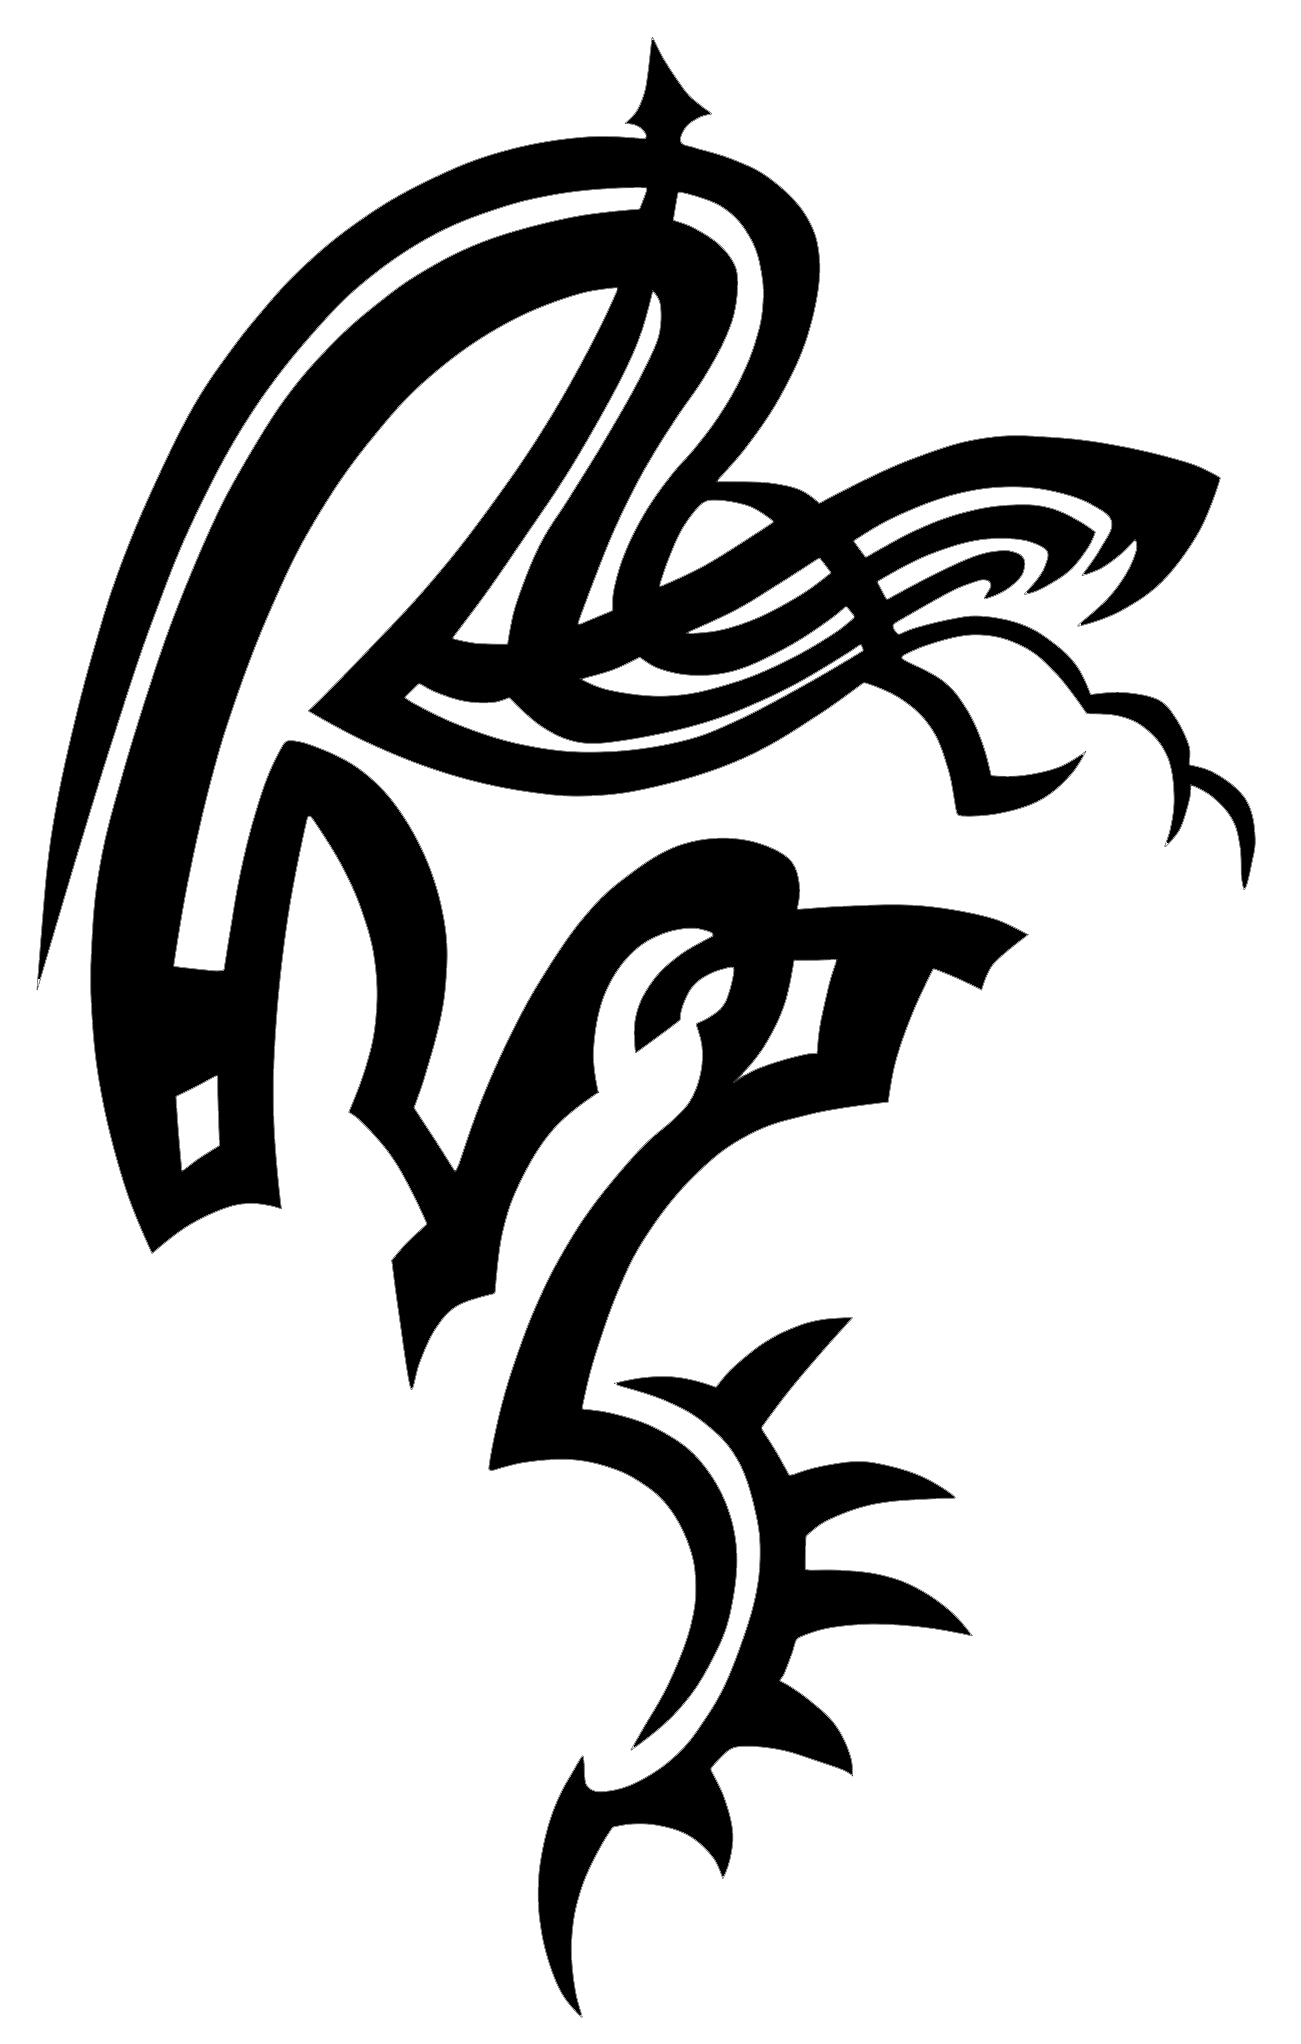 Similar Snake Tattoo PNG Image - Snake Tattoo PNG